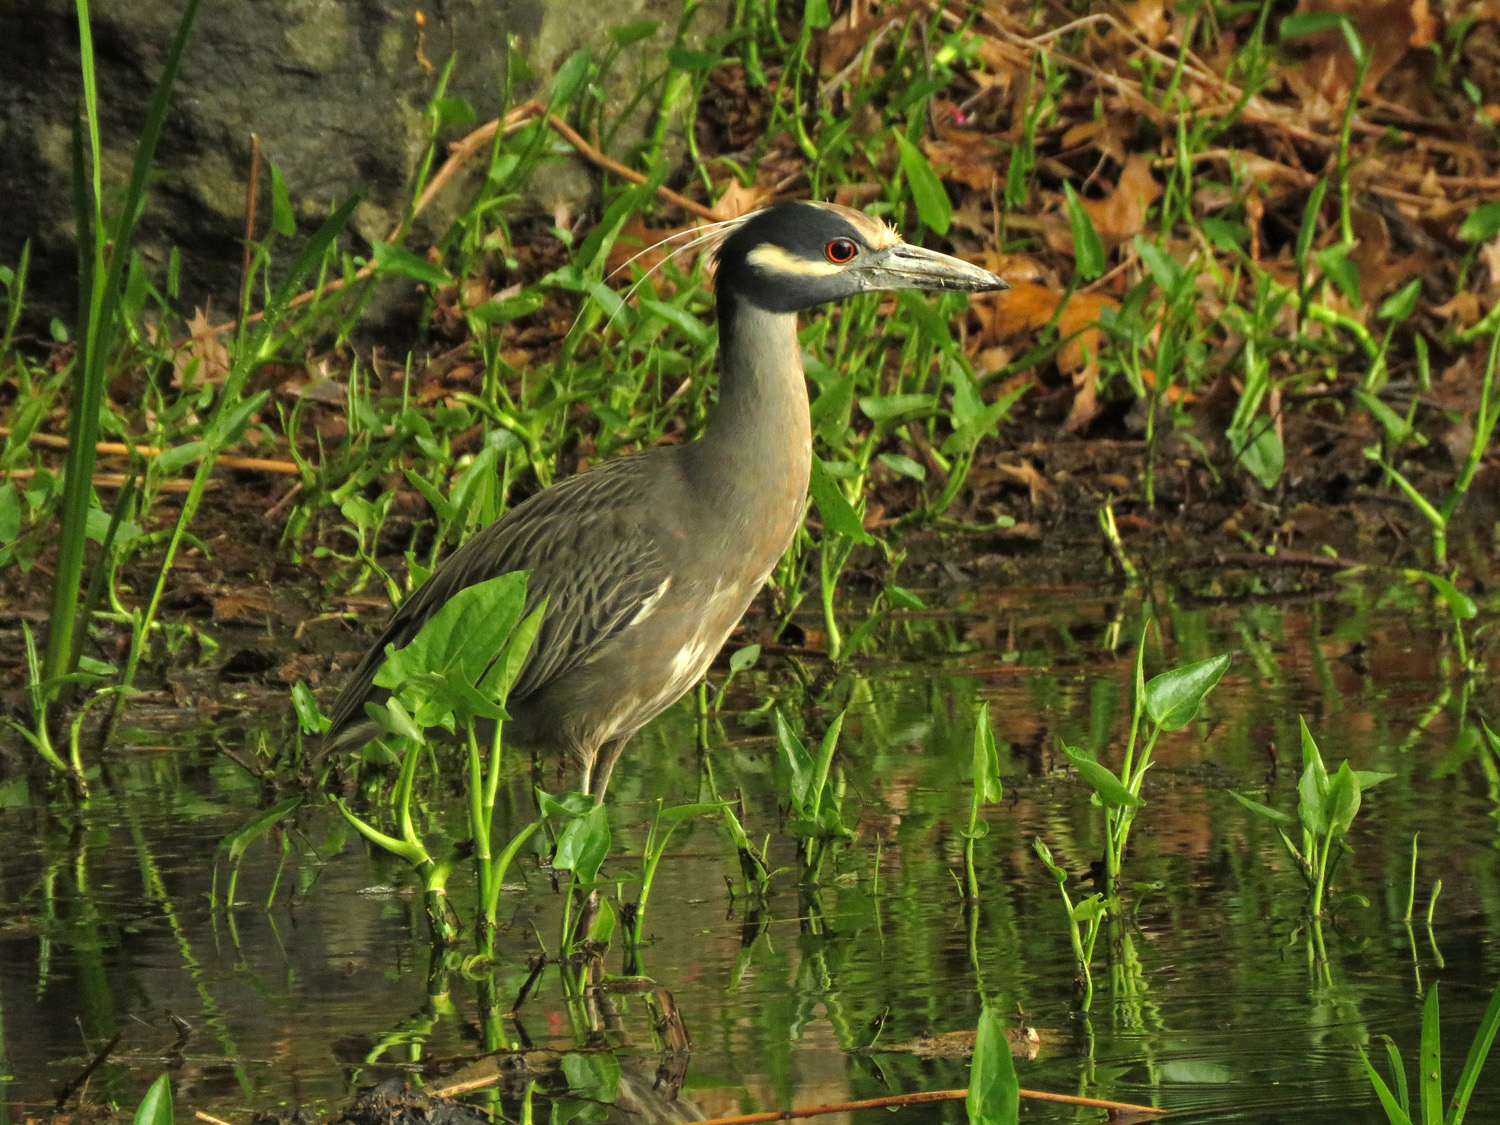 Yellow-crowned night heron, Turtle Pond, Central Park, May 14, 2019